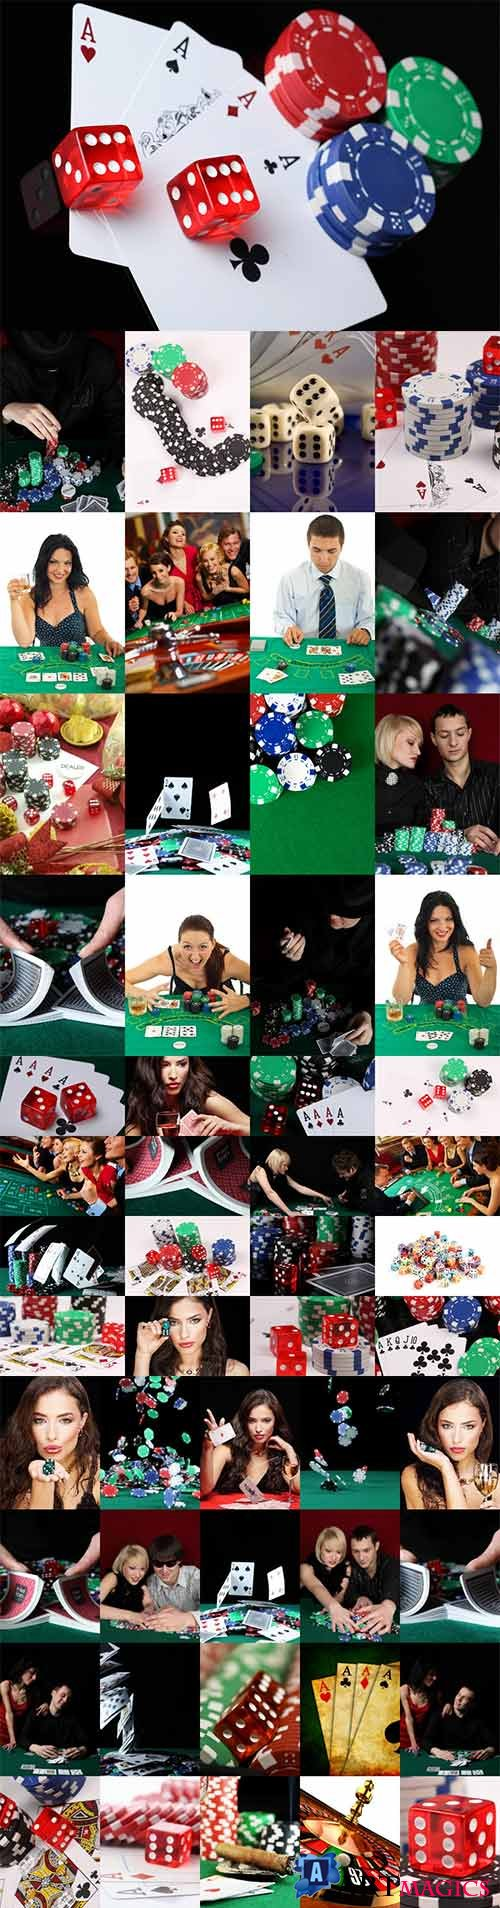 Casino stock photos